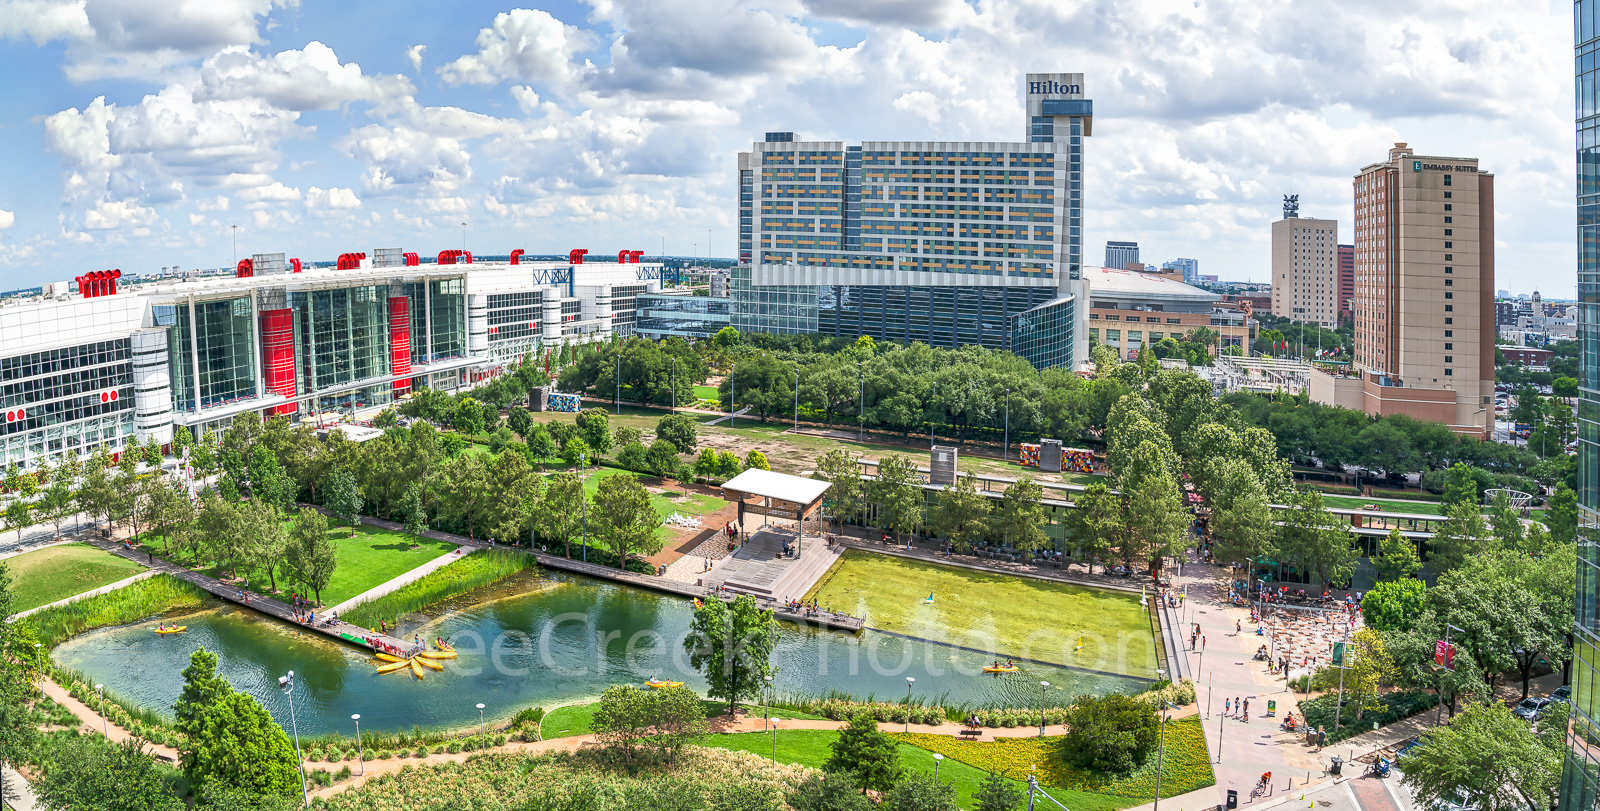 Houston, Discovery Green Park, George Brown Convention Center, water fountain, spray fountain, Kinder lake, Avenida Plaza, high rise, hotels, Hilton, downtown, city, cityscape, people,, photo